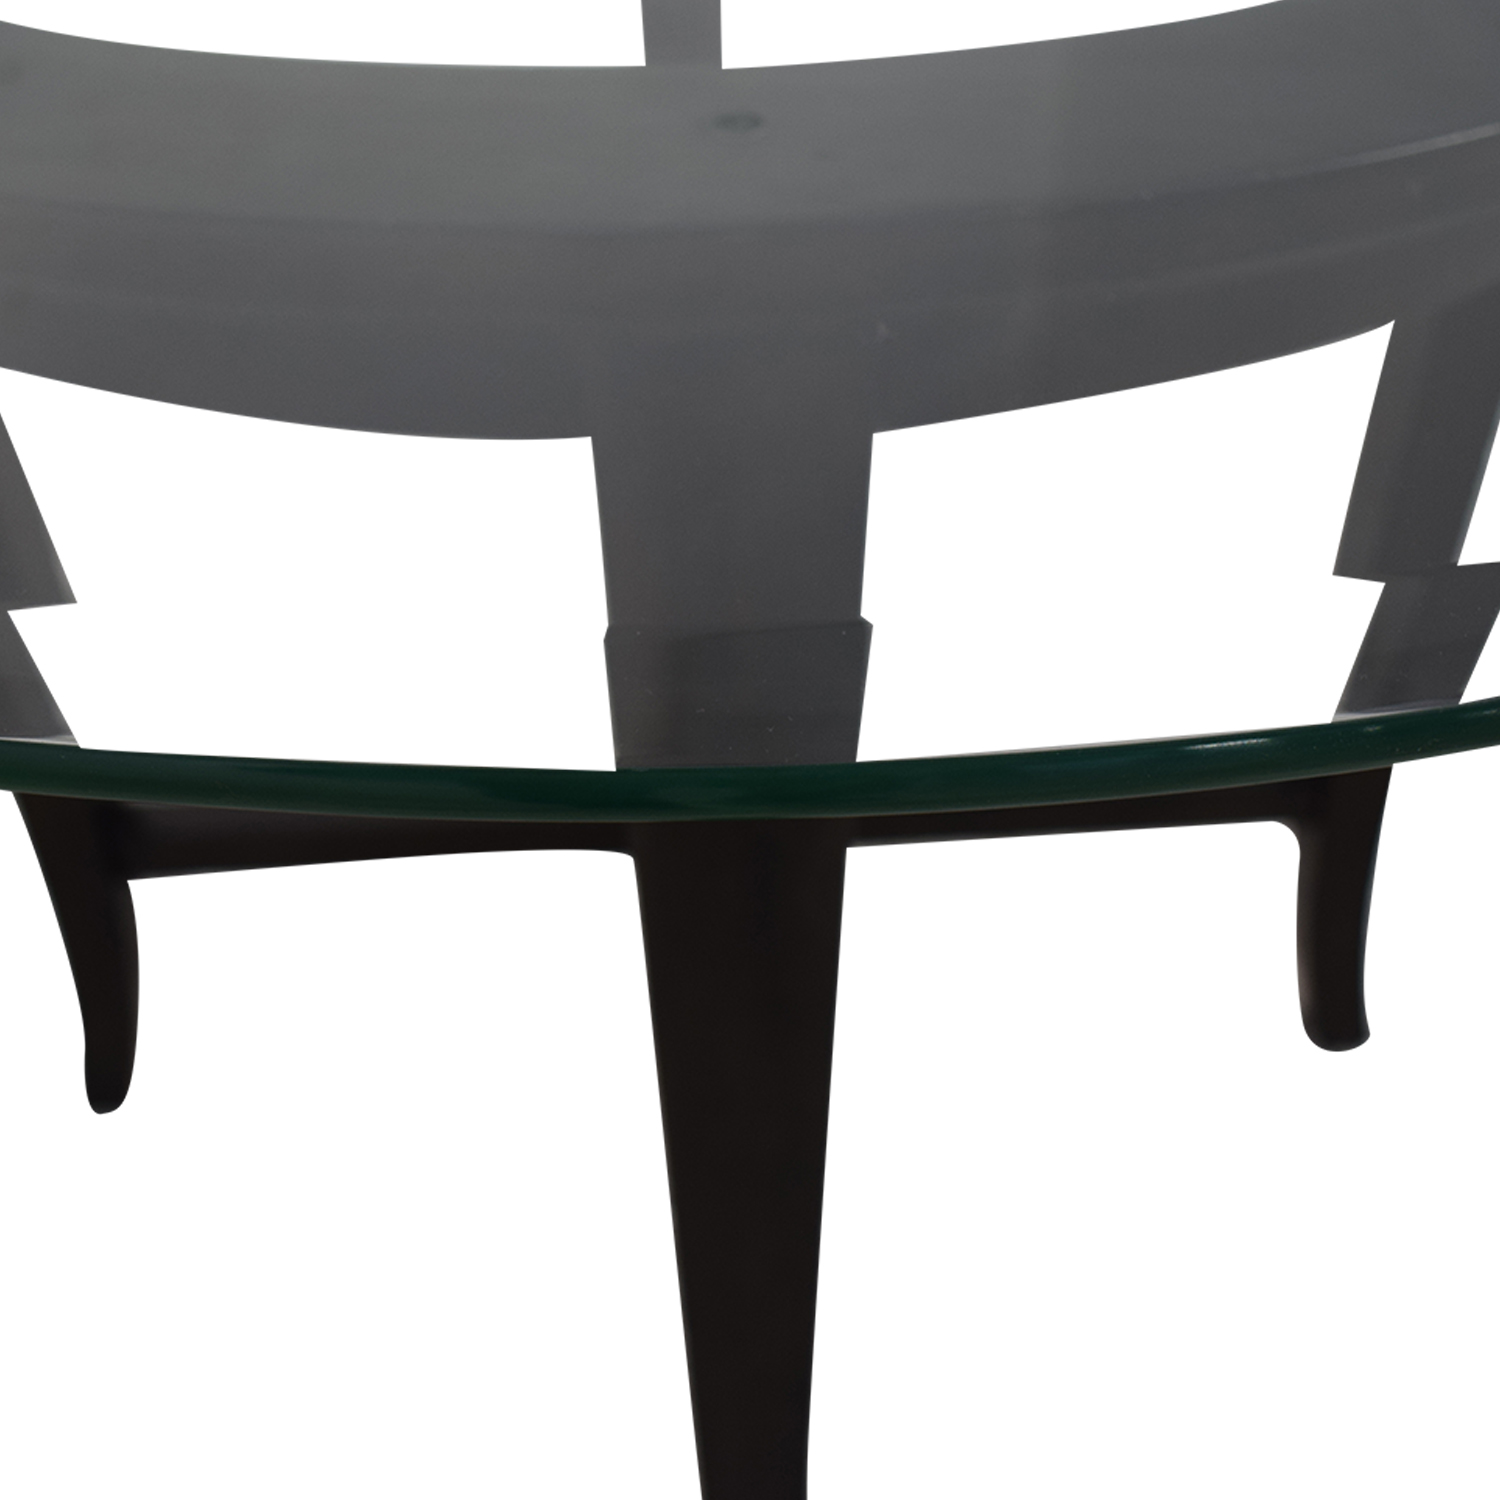 Crate & Barrel Crate & Barrel Halo Glass and Wood Dining Table discount